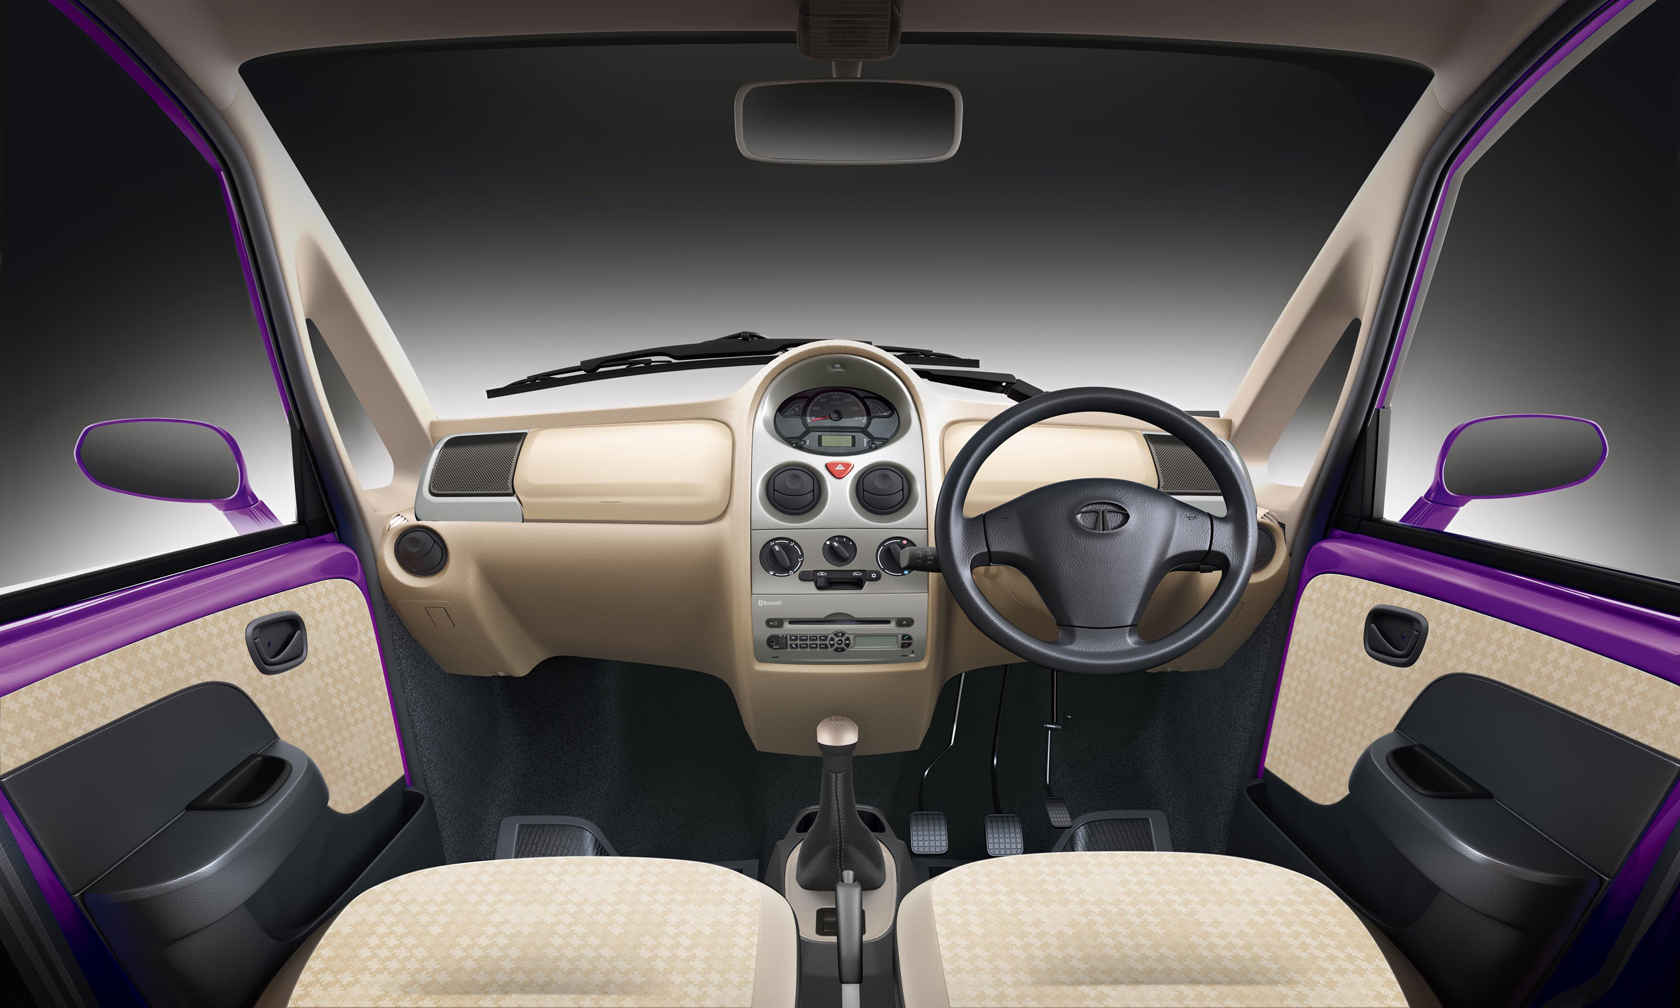 Tata Nano Twist With Power Steering At Rs 2 36 Lakhs Price